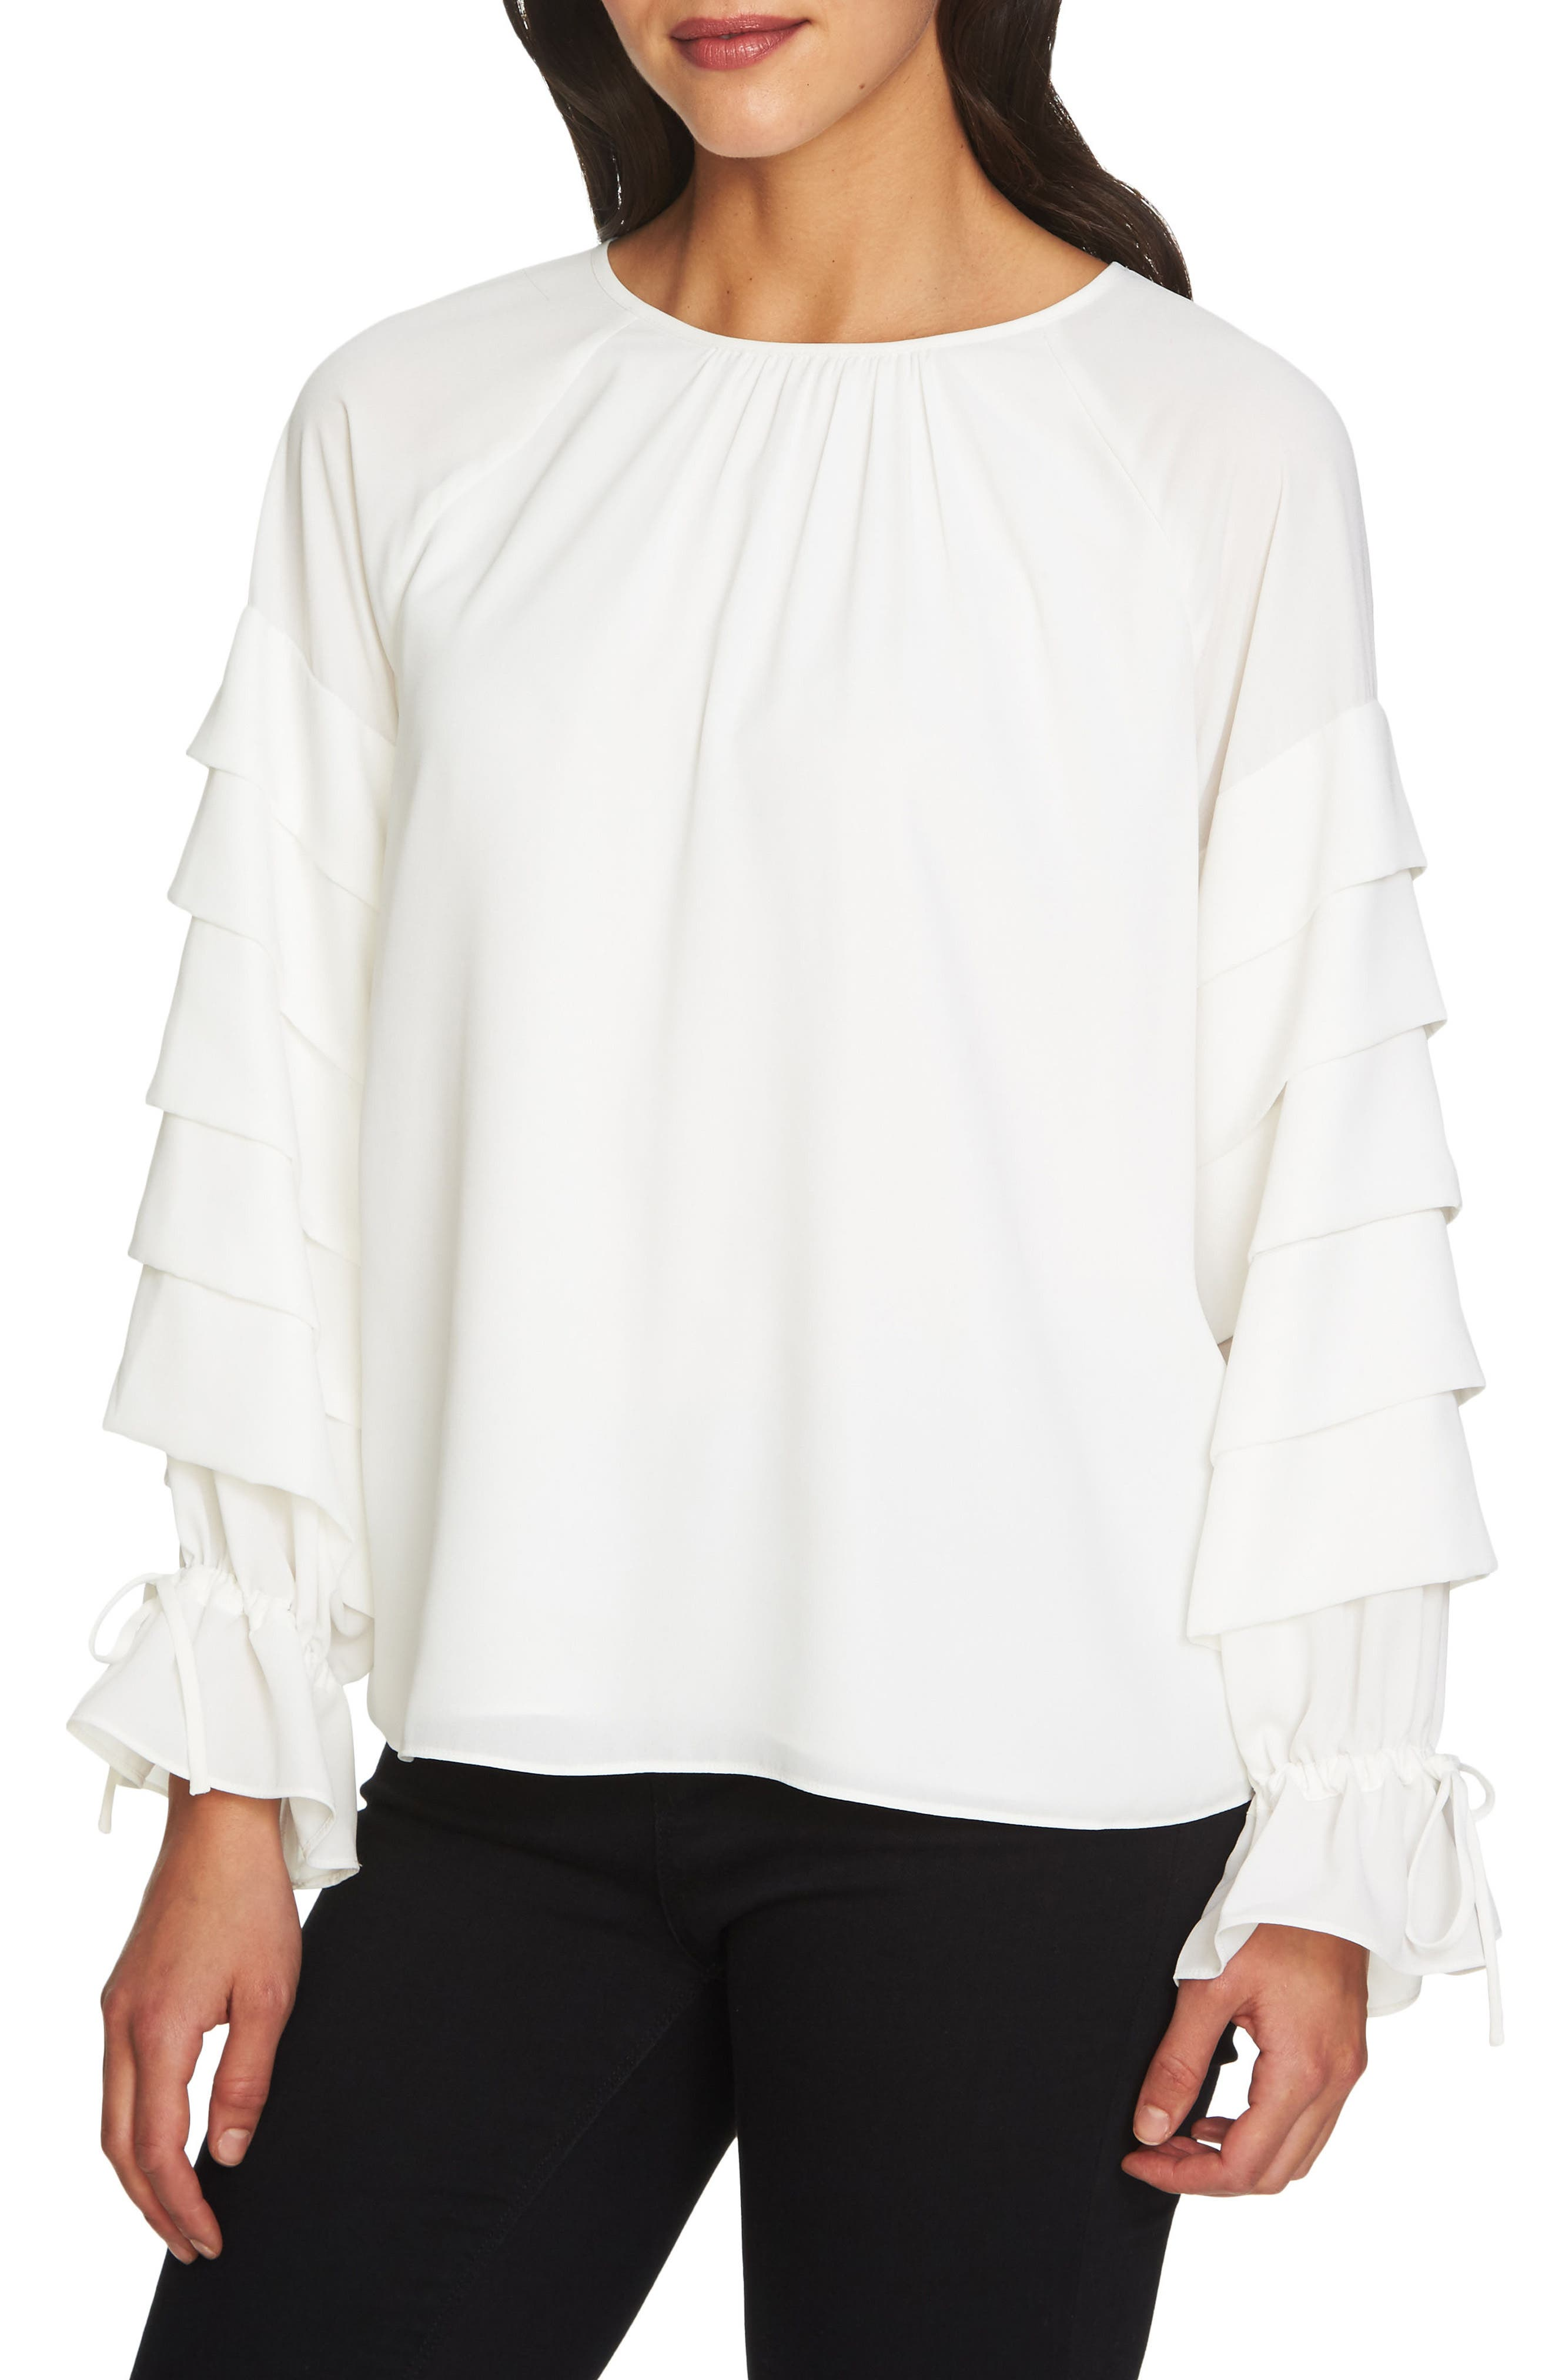 Tiered Sleeve Top,                             Main thumbnail 1, color,                             108-Antiq. White